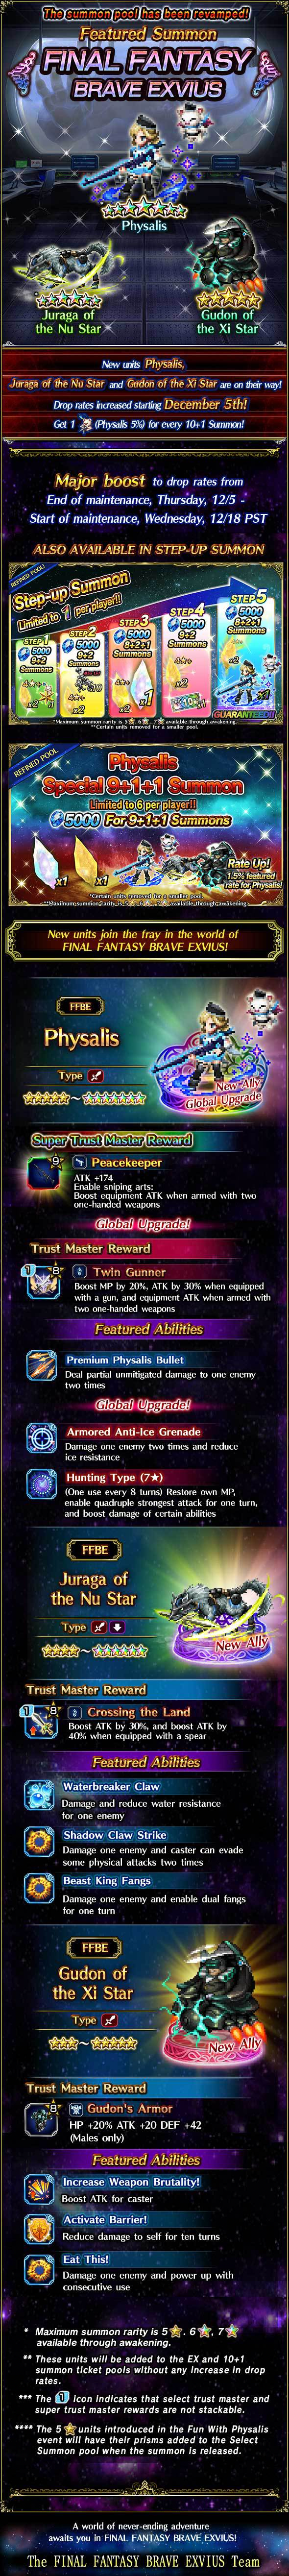 Invocations du moment - FFBE (Physalis) - du 05/12 au 19/12/19 20191203PhysalisFeaturedSummon